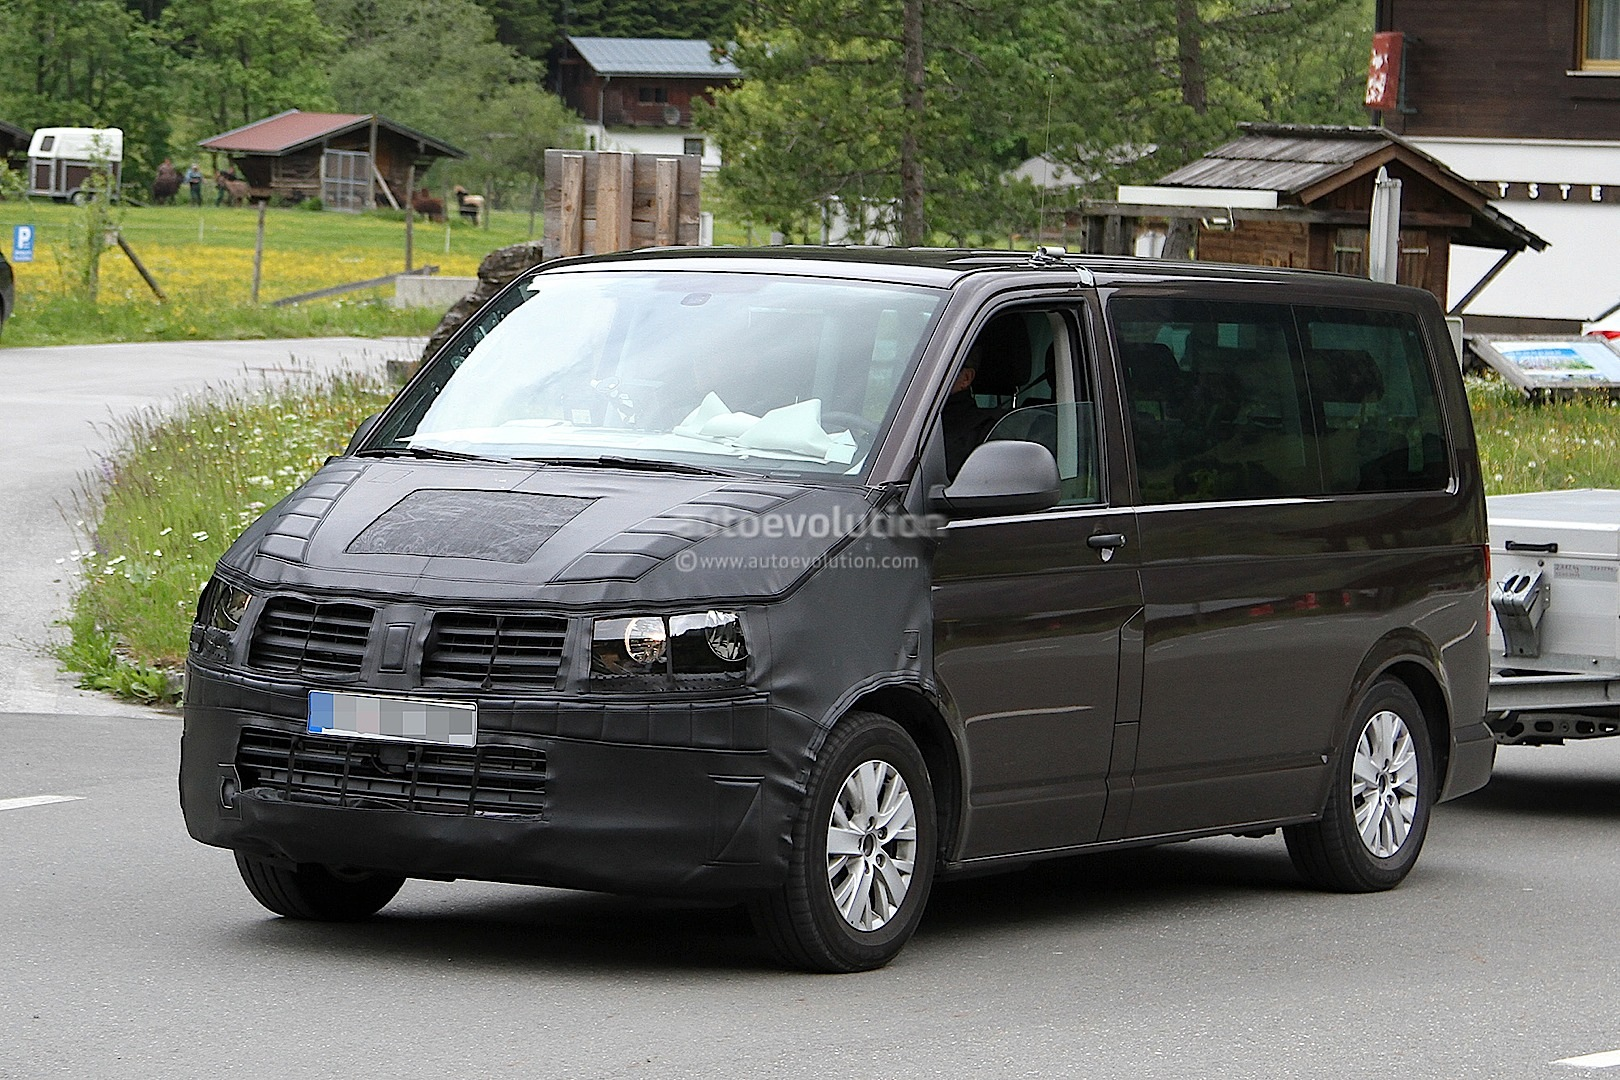 new t6 volkswagen transporter interior shown in latest. Black Bedroom Furniture Sets. Home Design Ideas